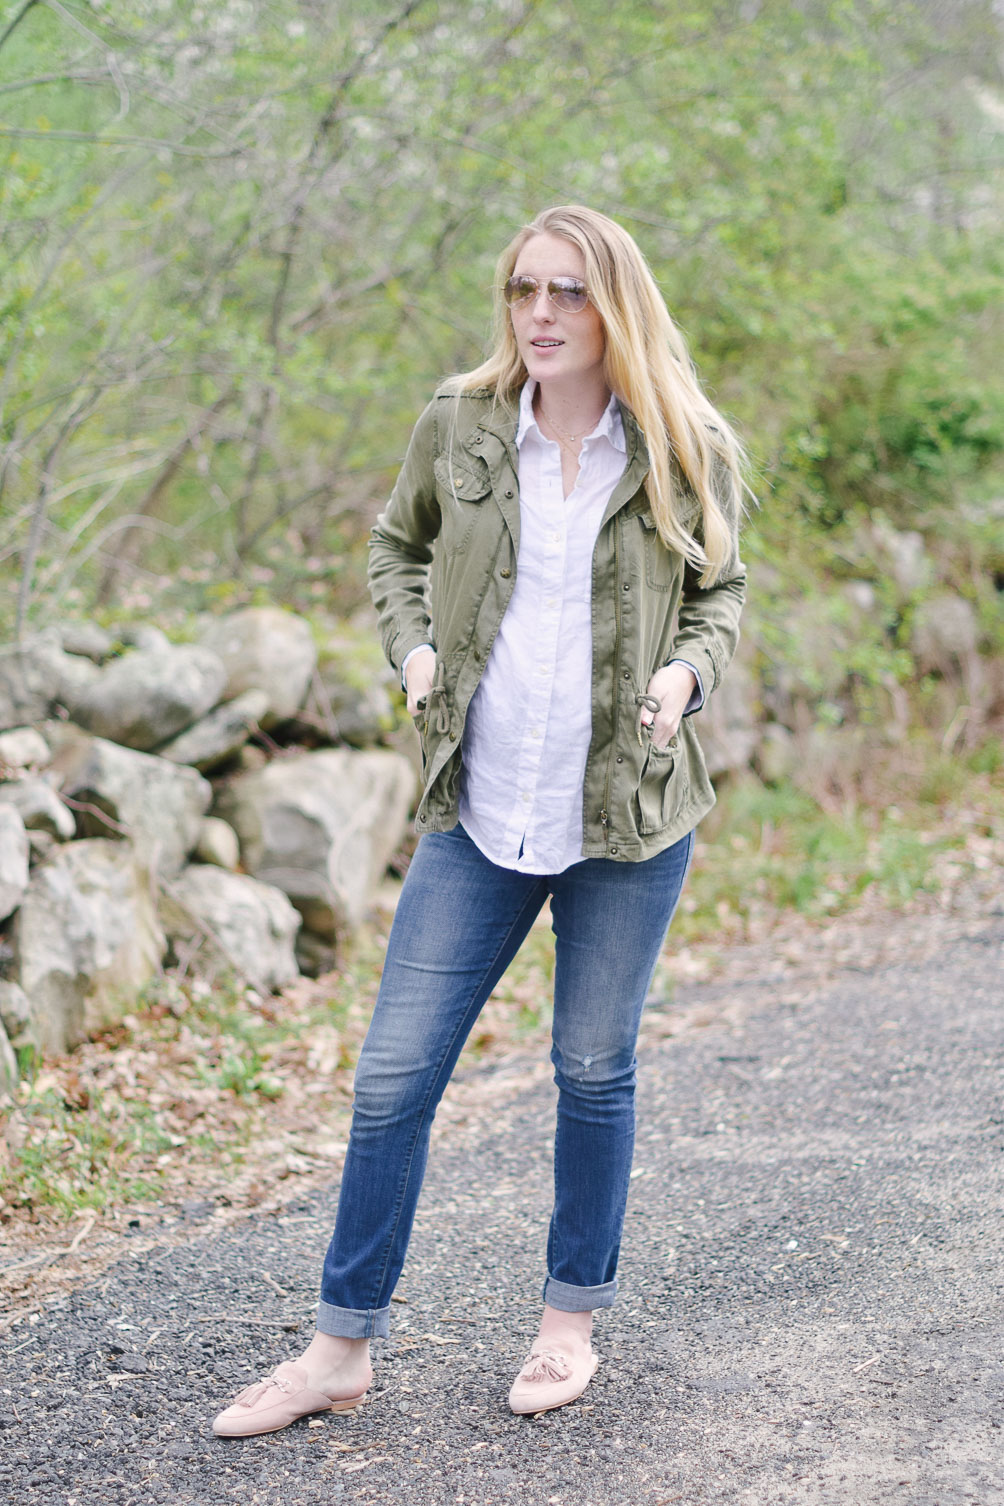 styling spring earth tones in maternity fashion look